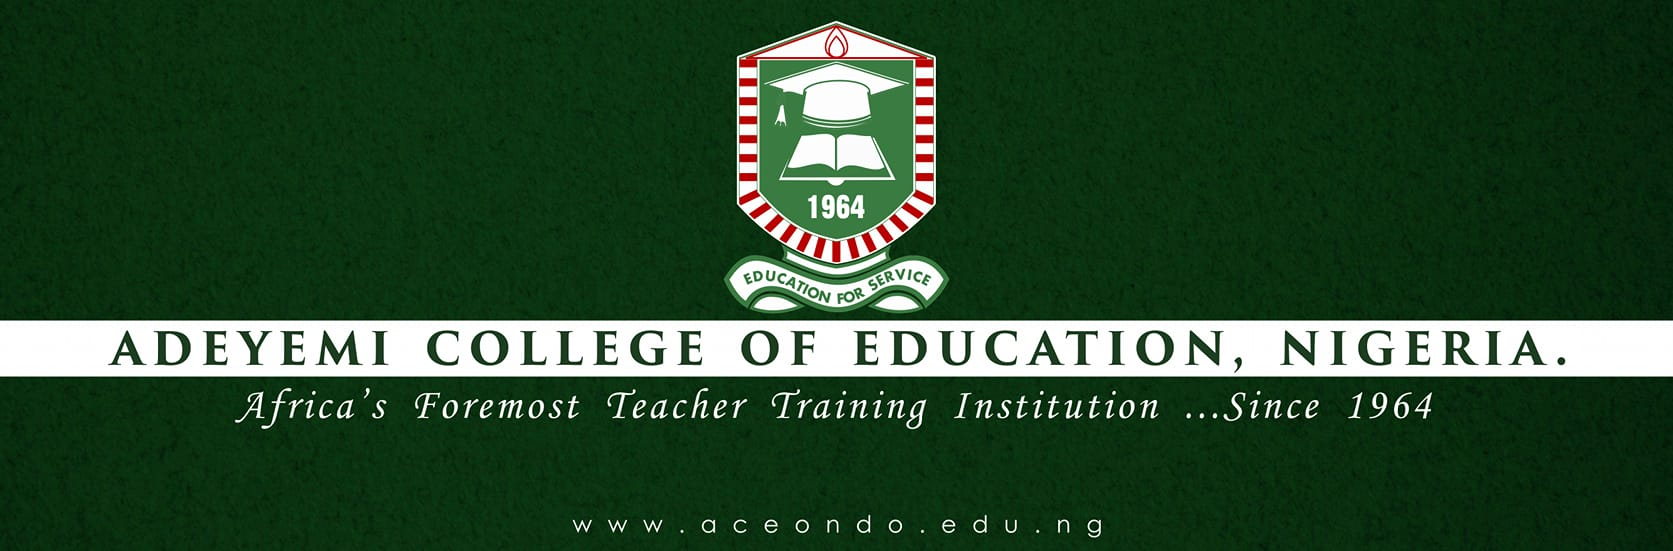 Adeyemi College of Education Convocation Ceremony Programme of Events